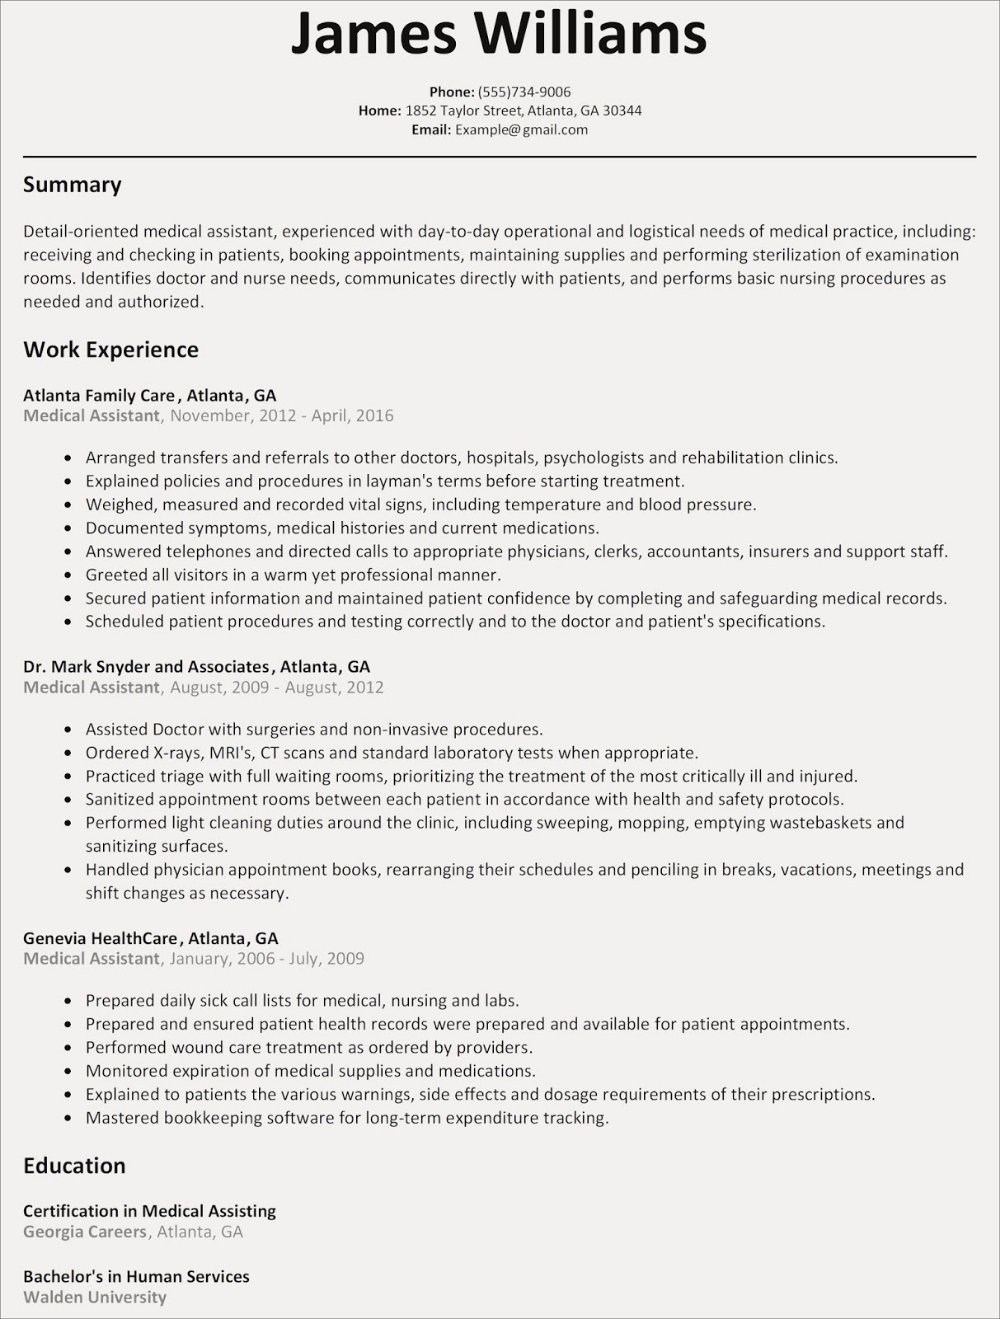 Cosmetologist Resume Example Cosmetologist Resume Examples Newly Licensed Cosmetolo Medical Assistant Resume Resume Summary Examples Resume Template Examples